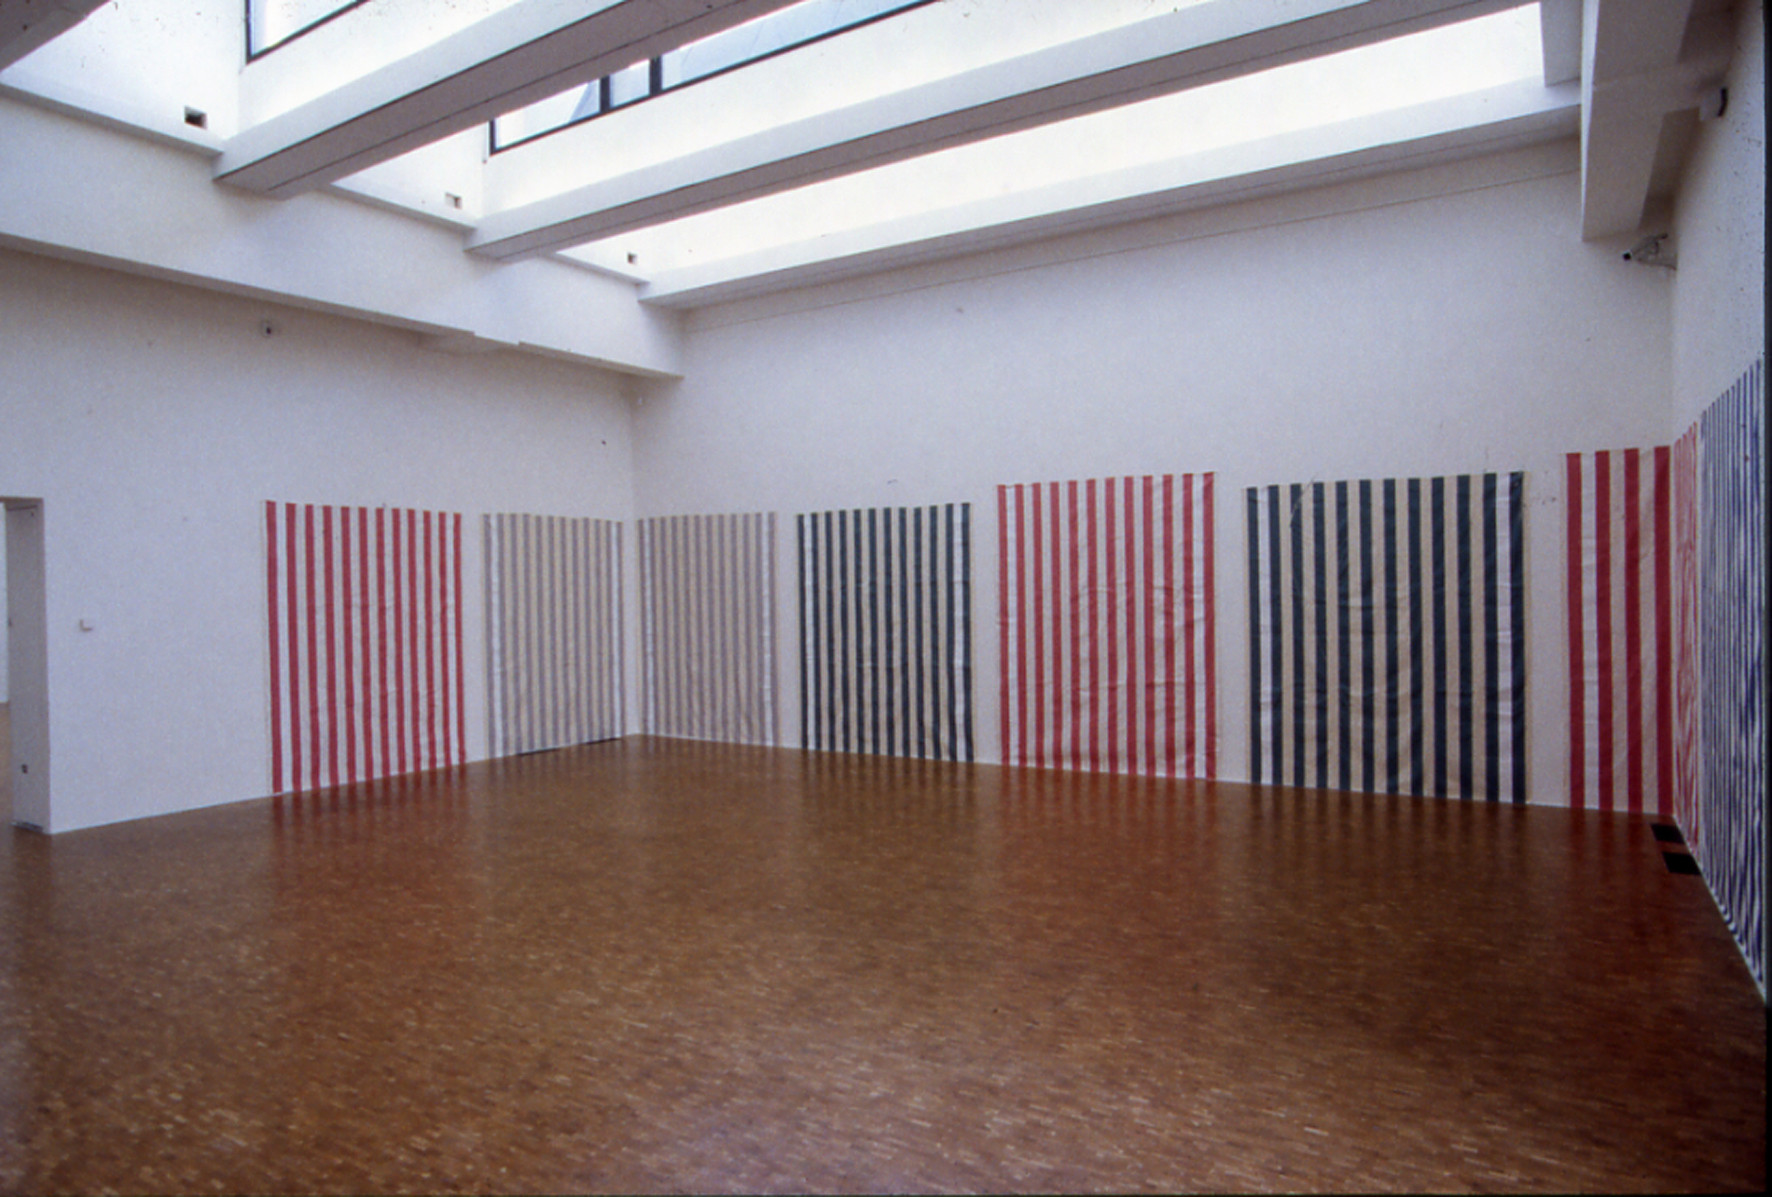 Daniel Buren. Striped cotton fabric with vertical white and colored bands of 8,7cm (+/– 0,3 cm) each. The two external white bands covered over with acrylic white paint recto-verso, [Tissu en coton rayé de bandes verticales blanches et colorées de 8,7cm (+/– 0,3 cm) chacune. Les deux bandes extrêmes blanches recouvertes de peinture acrylique blanche recto-verso]. 1970